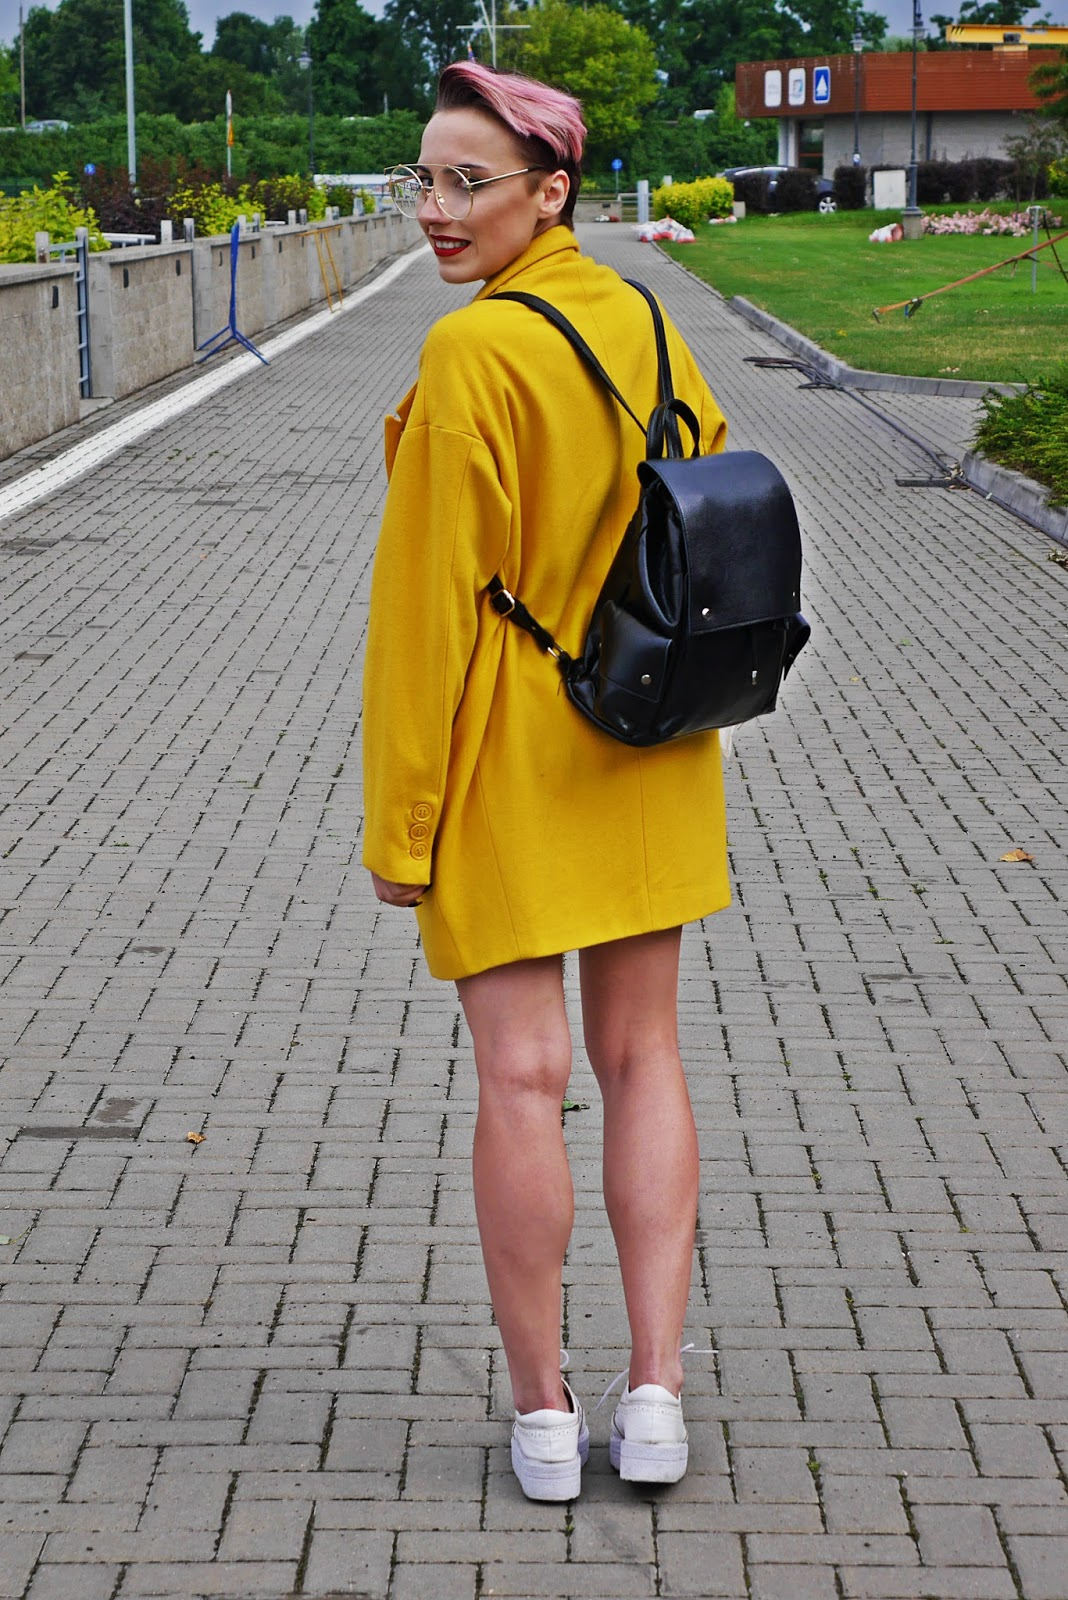 black_backpack_white_platform_shoes_yellow_coat_look_karyn_blog_060717bf